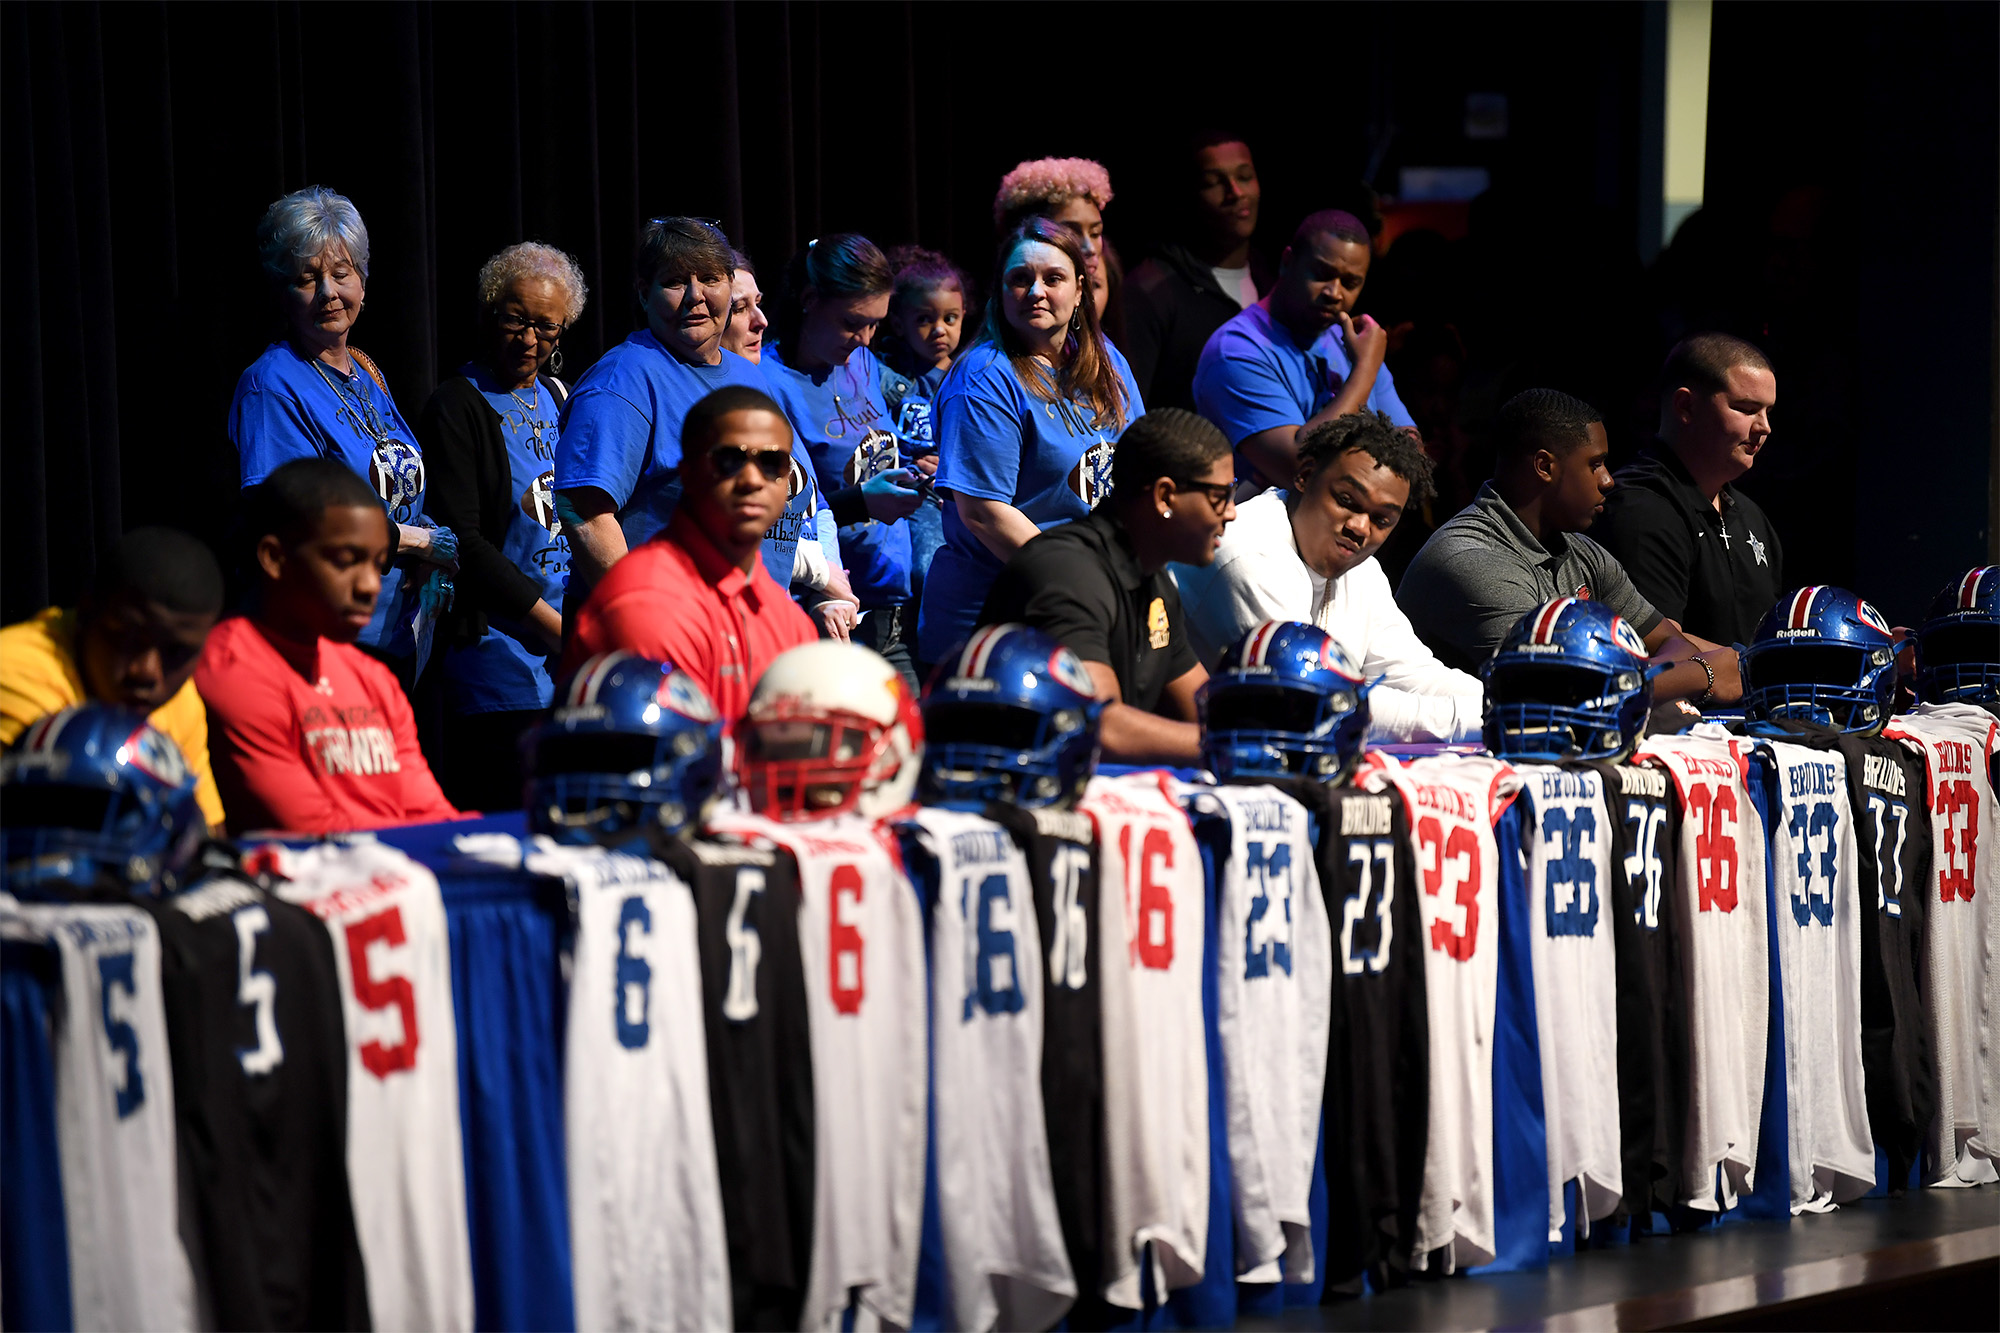 pdes signing day 2012 - HD2000×1333